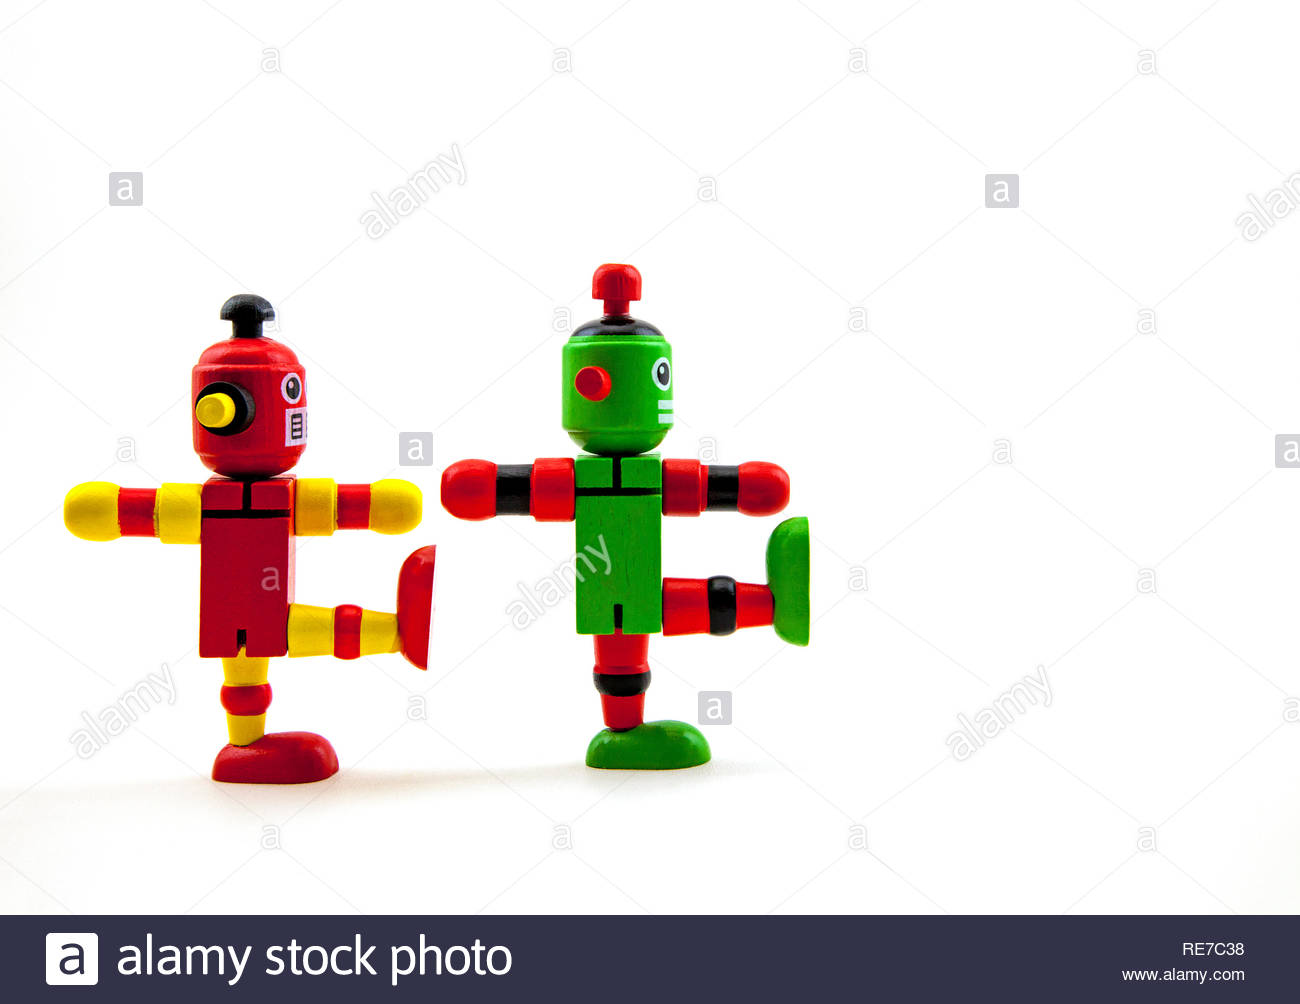 2 wooden toy robots, red / yellow & green / red, balancing on one foot, as if marching from left to right. Humour / funny. White background copy space - Stock Image